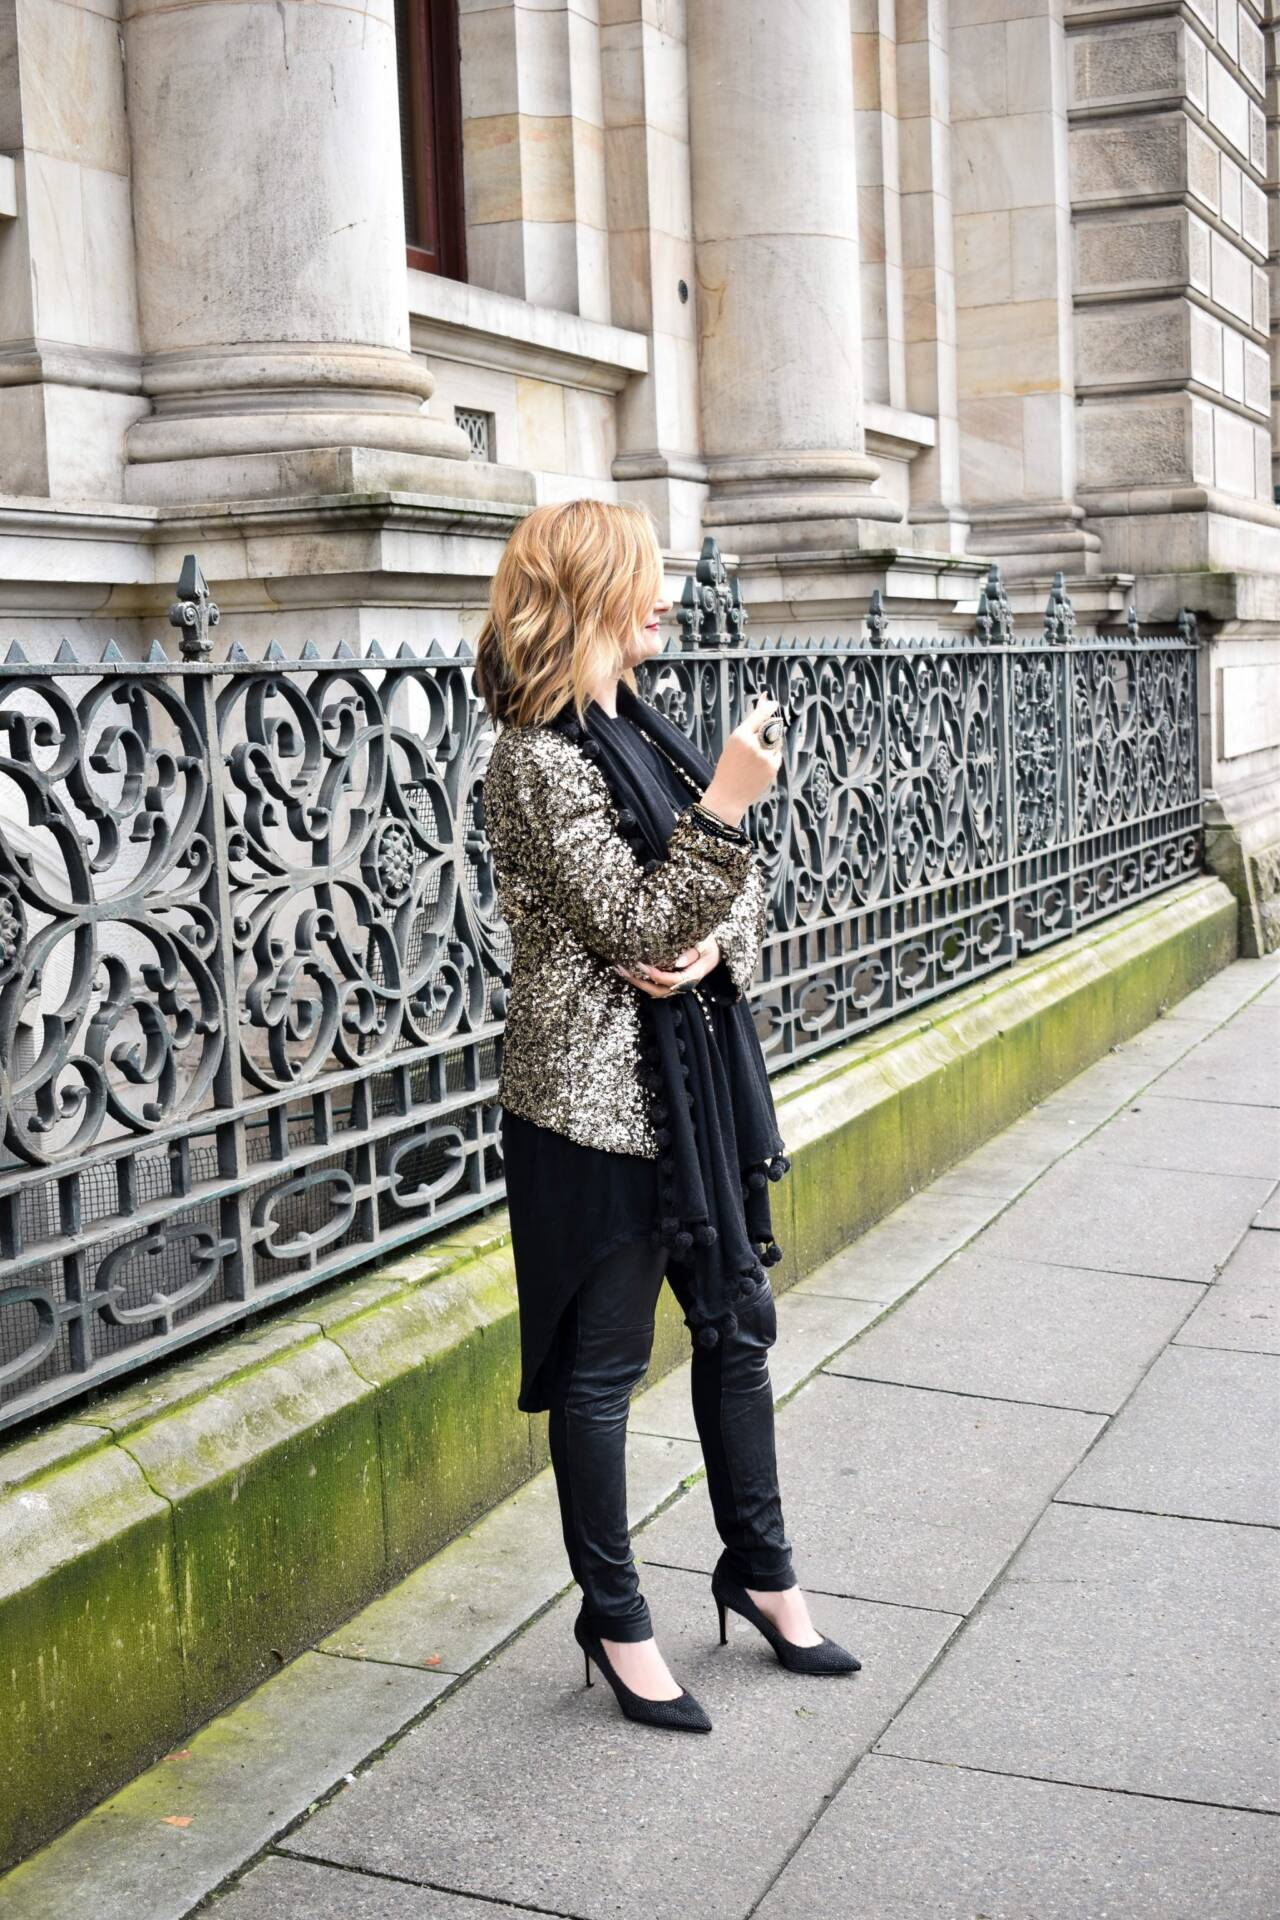 Sequin Jacket - Streetstyle